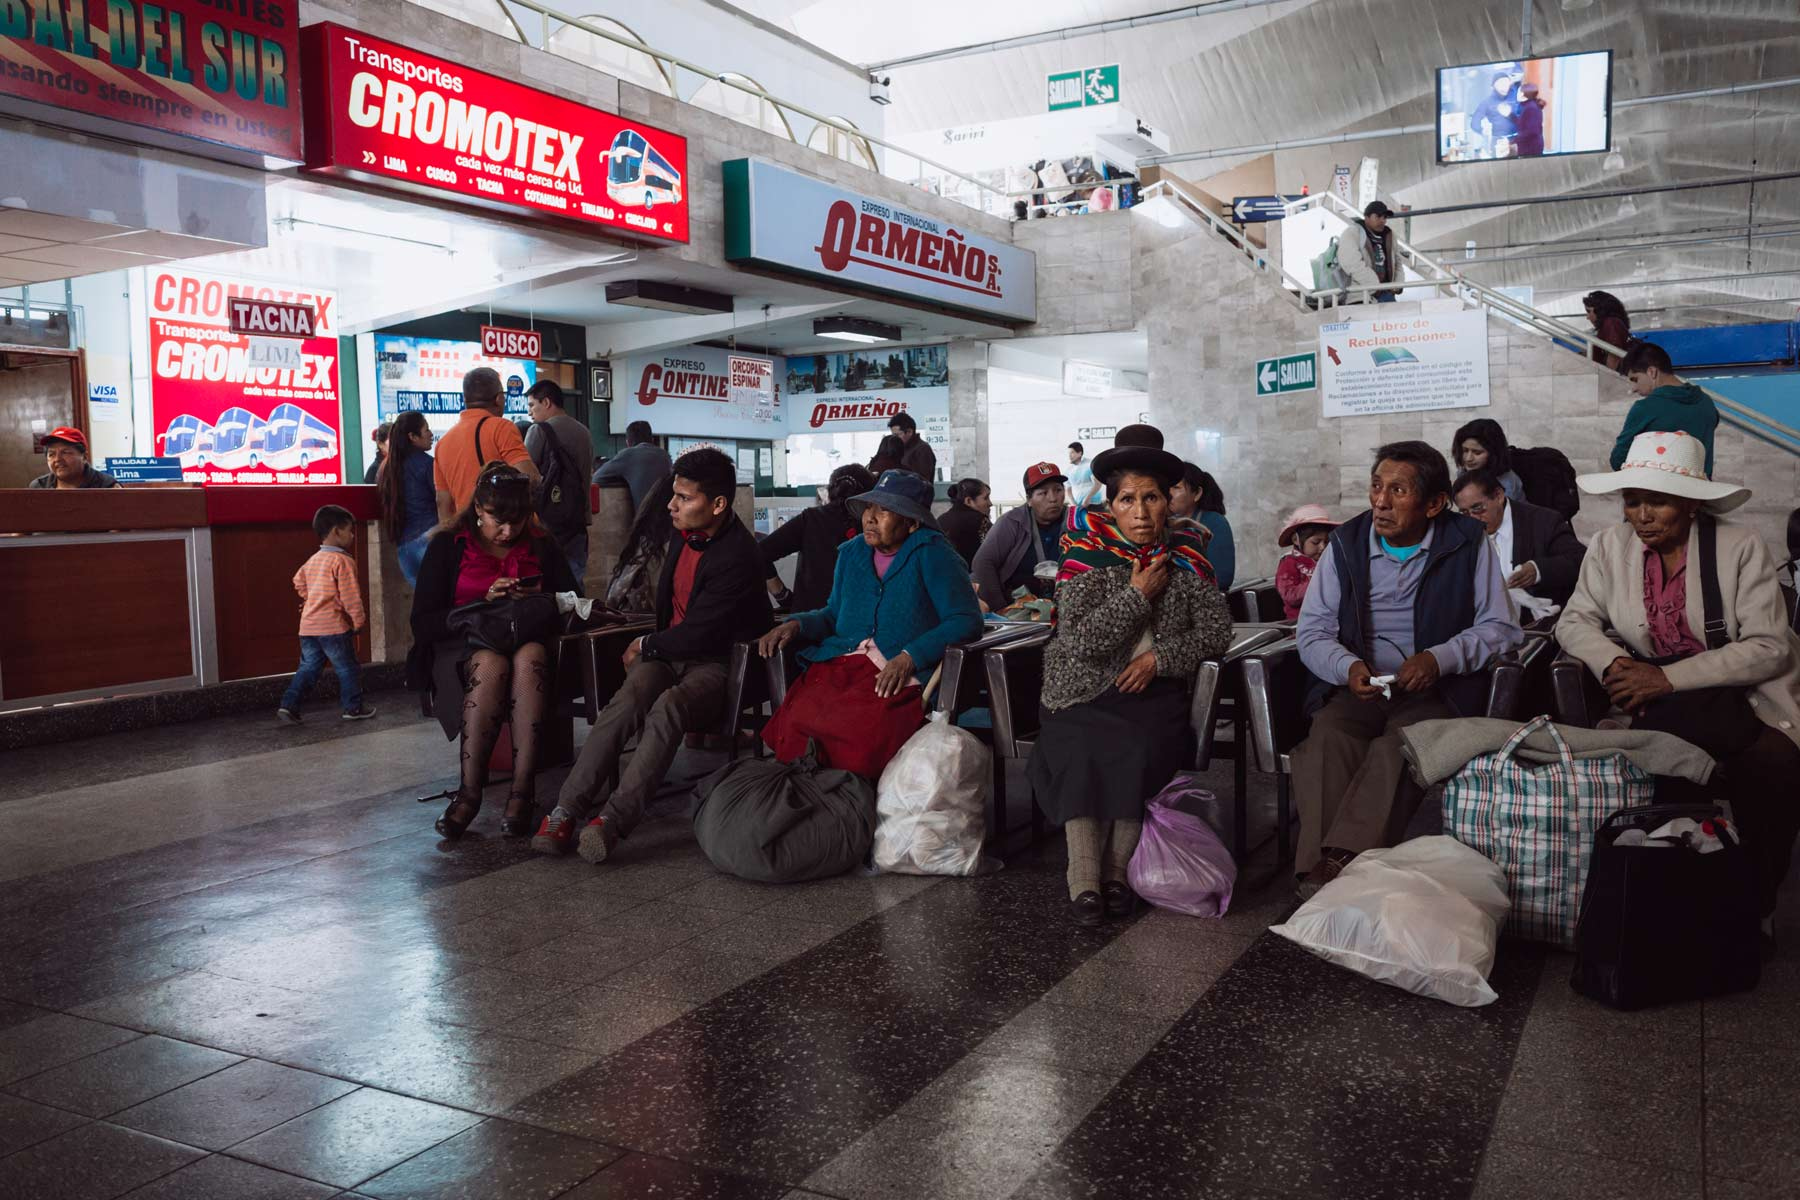 Passengers waiting for their long distance bus in Arequipa.